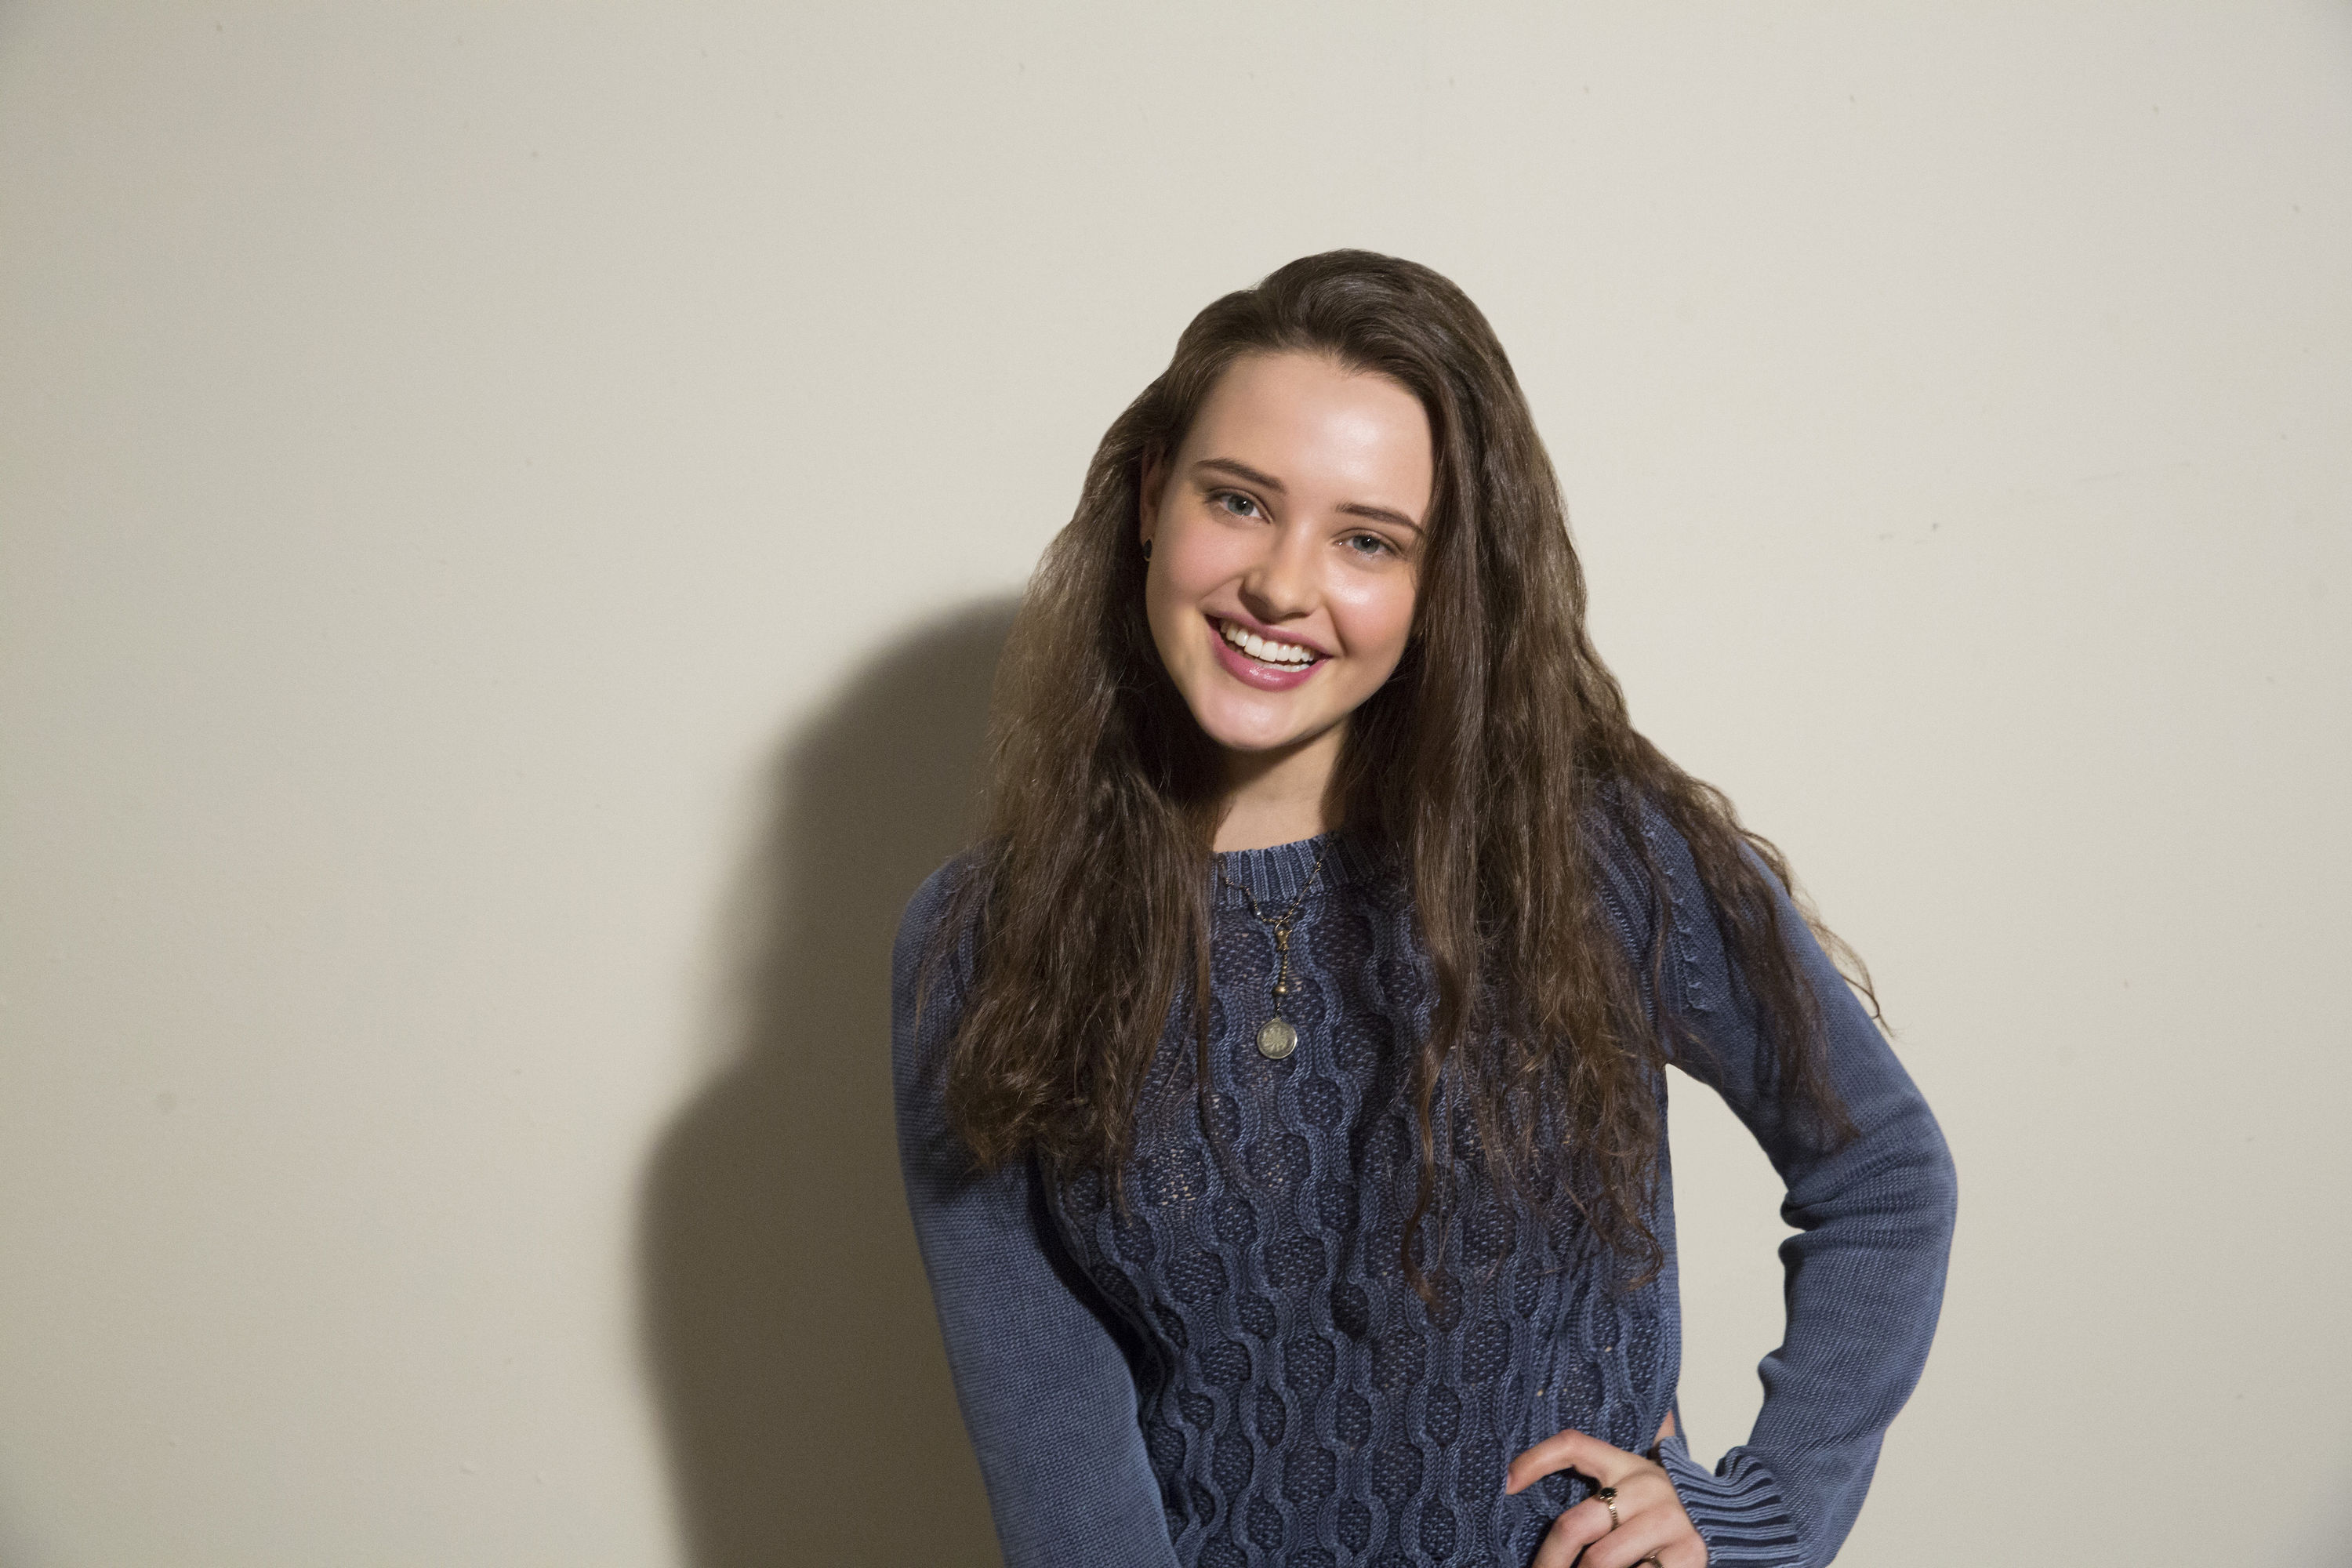 katherine langford wallpaper background 64019